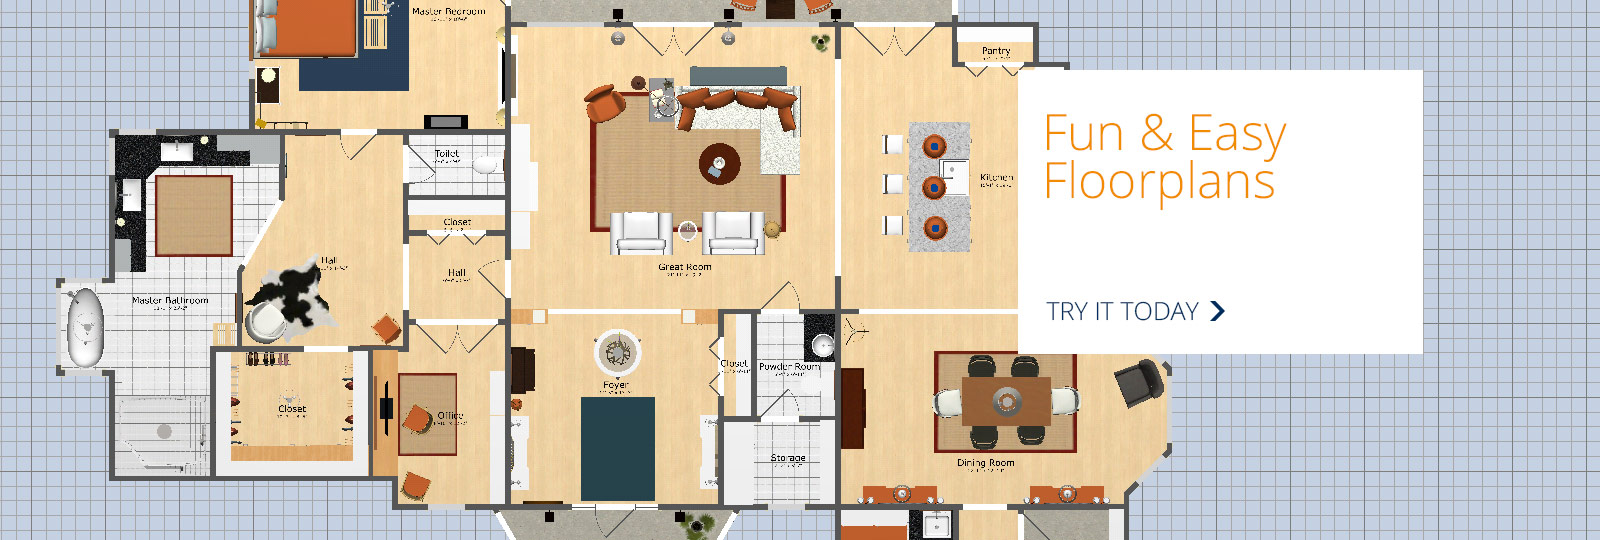 fun and easy floorplans visualize your rooms